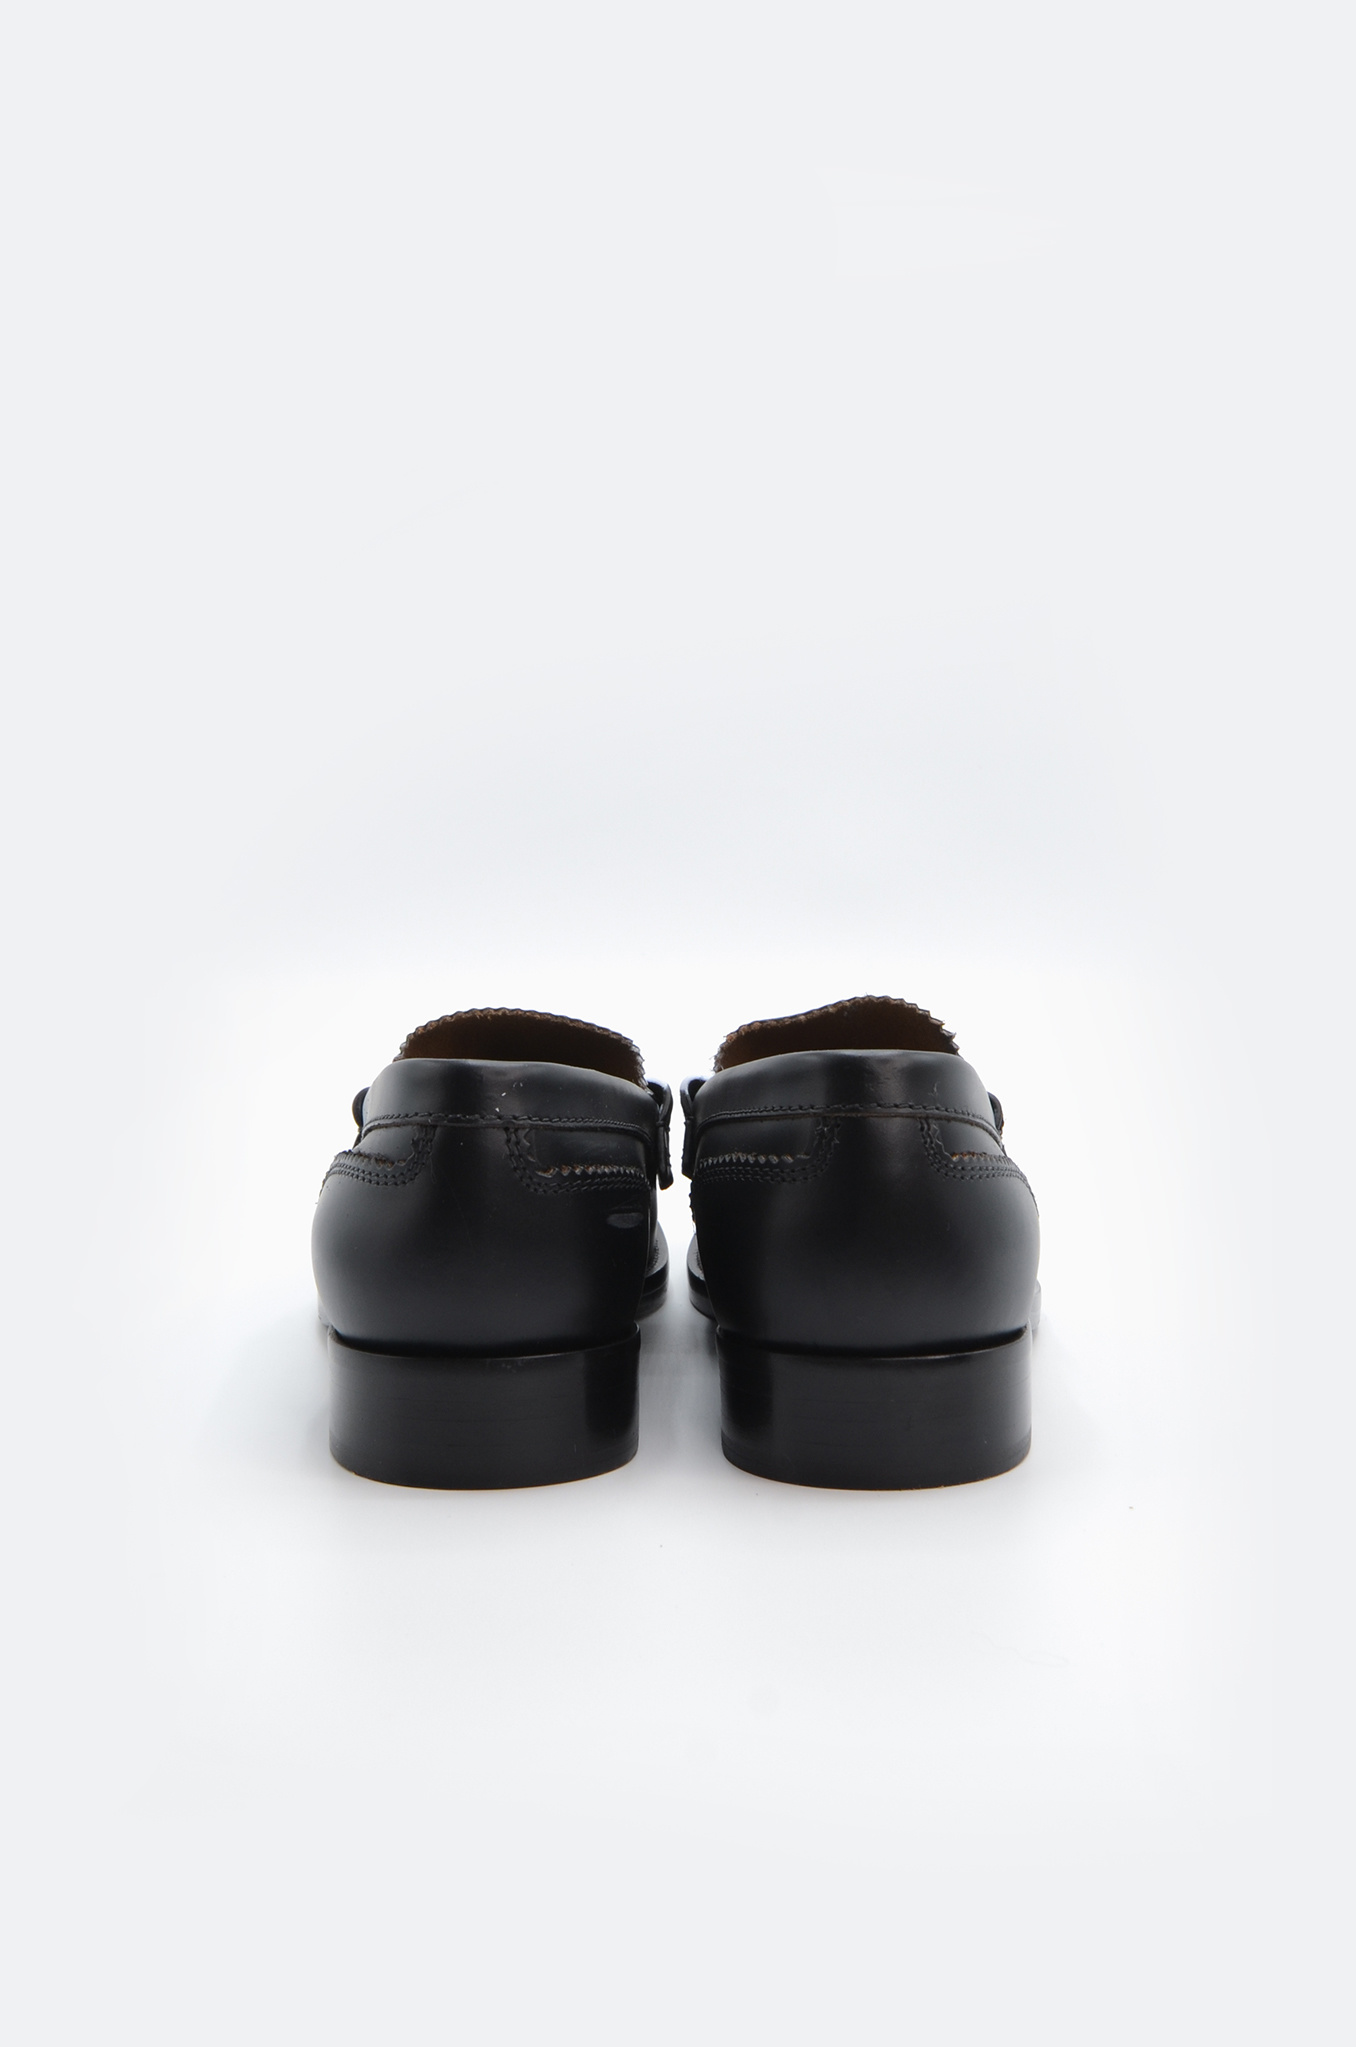 PENNY LOAFER IN BLACK X WHITE-5